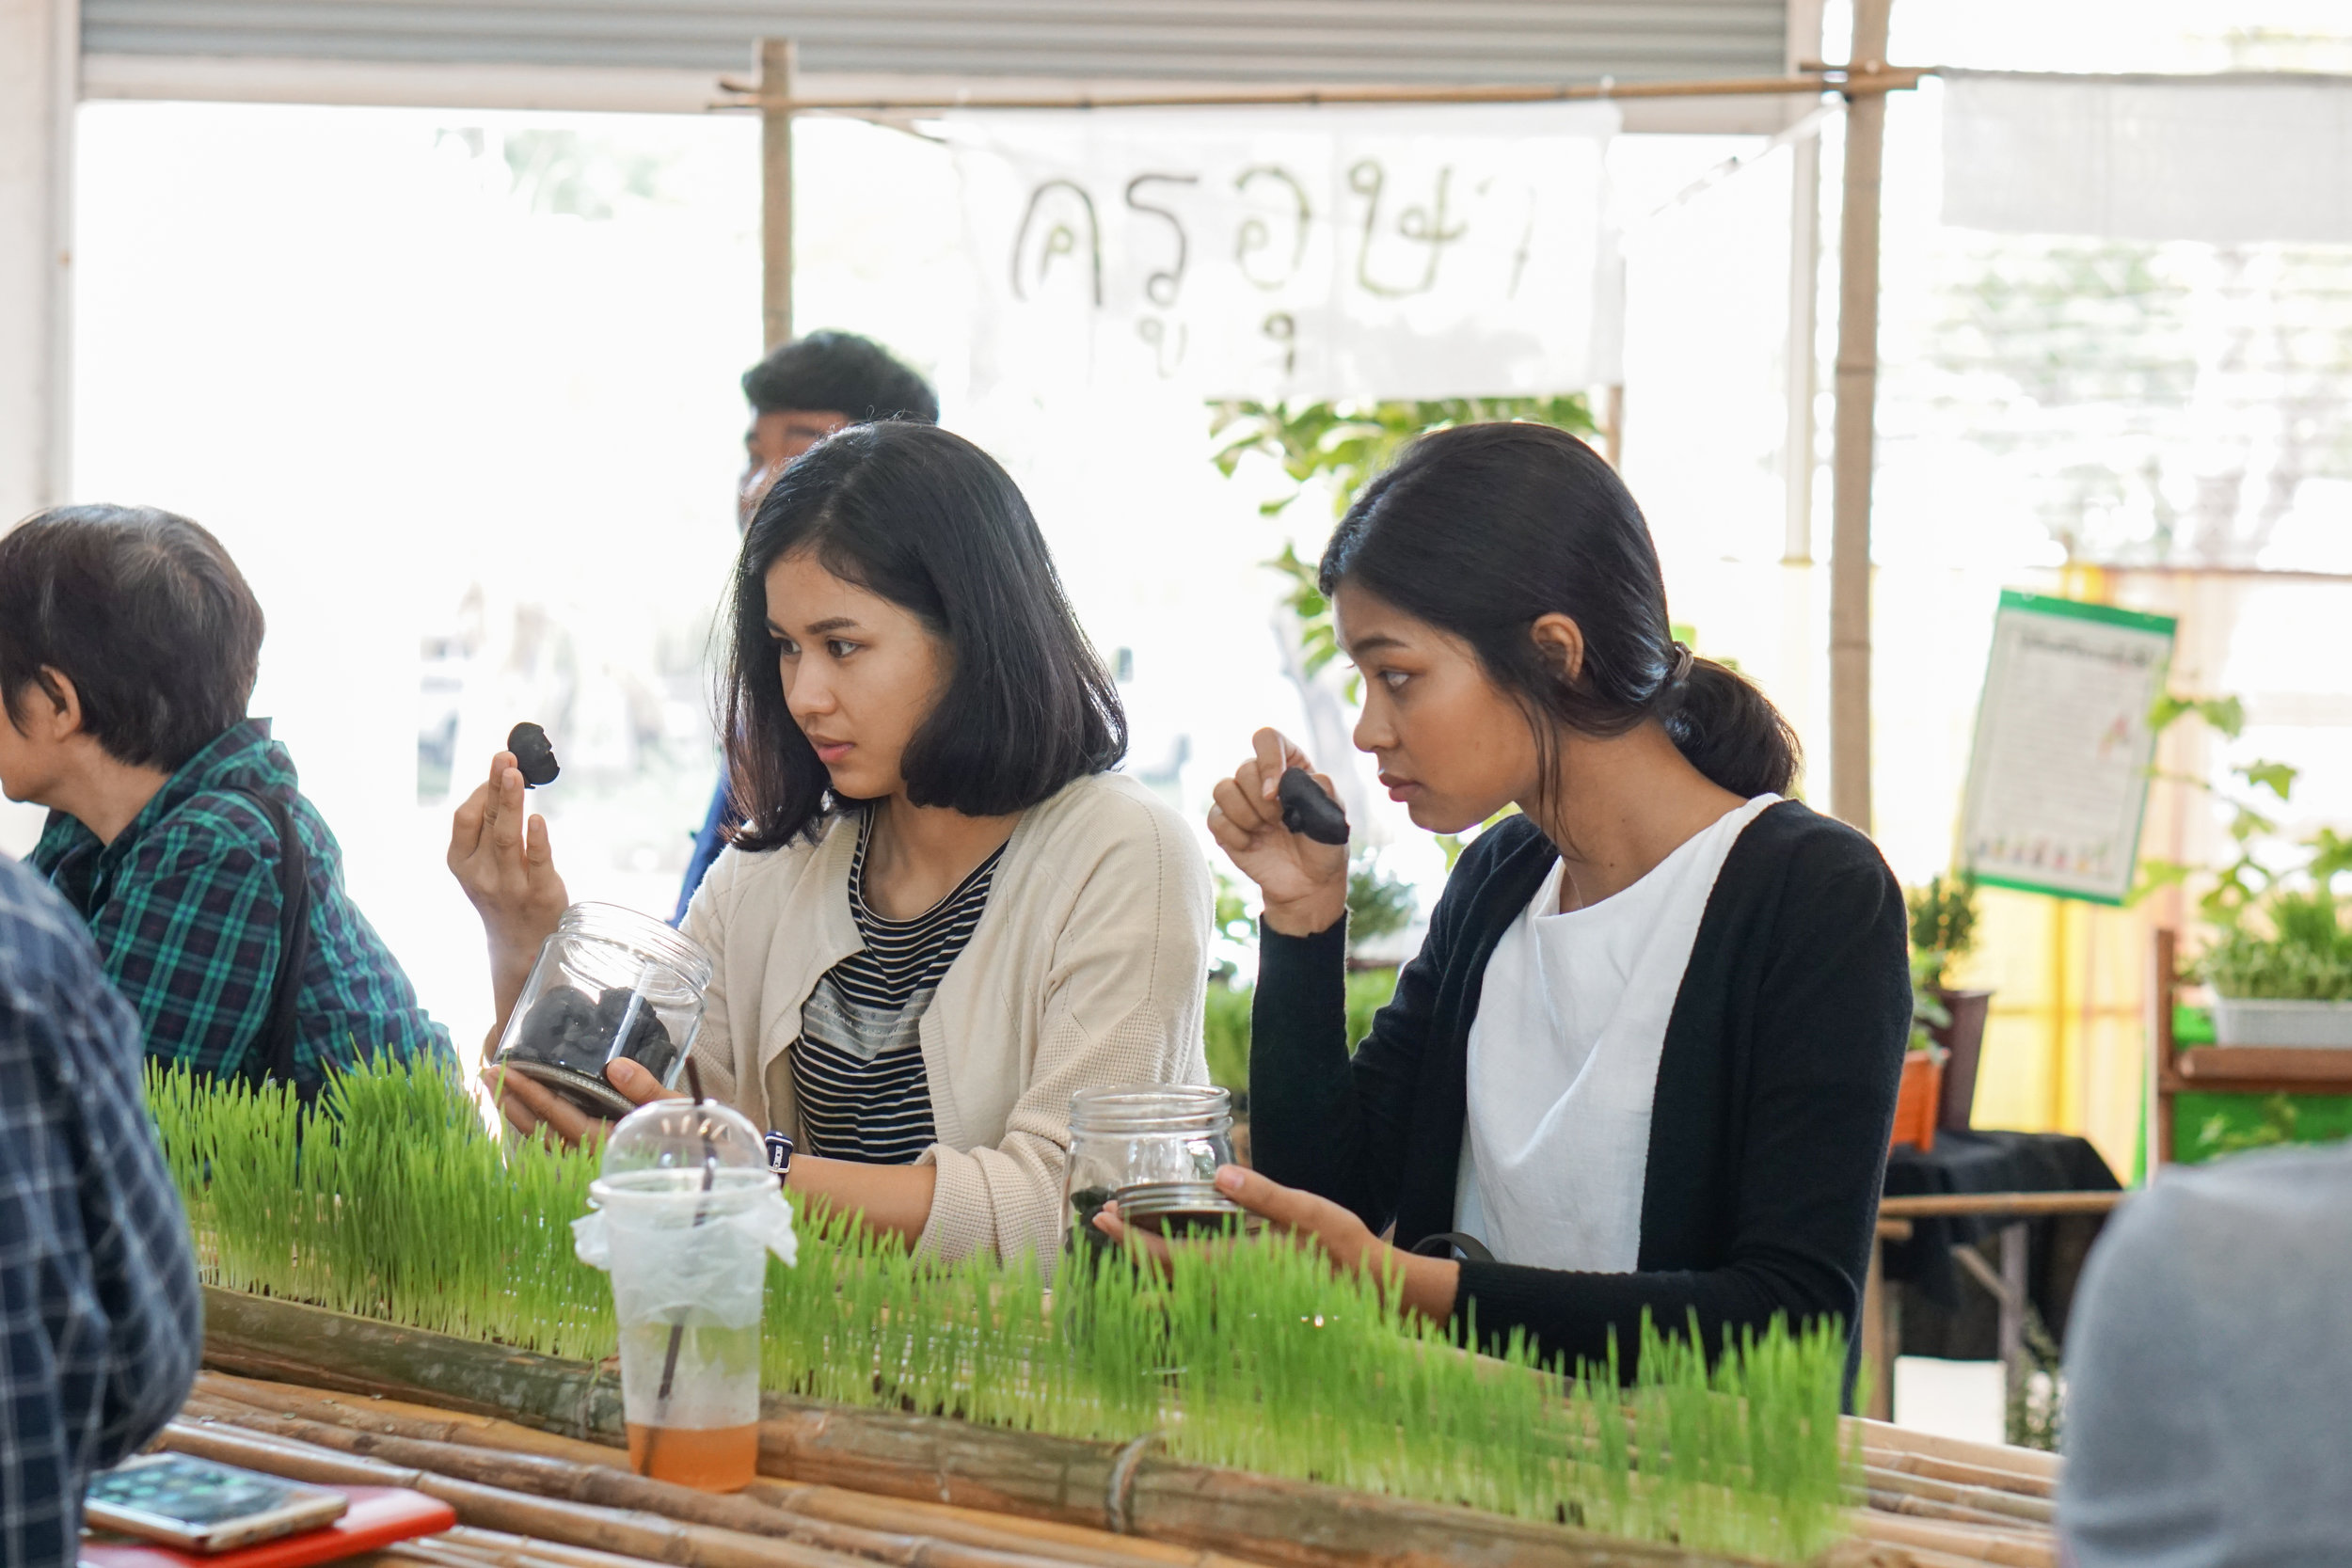 City Farming for a Sustainable City Event: Exhibition and workshops by urban farmer groups